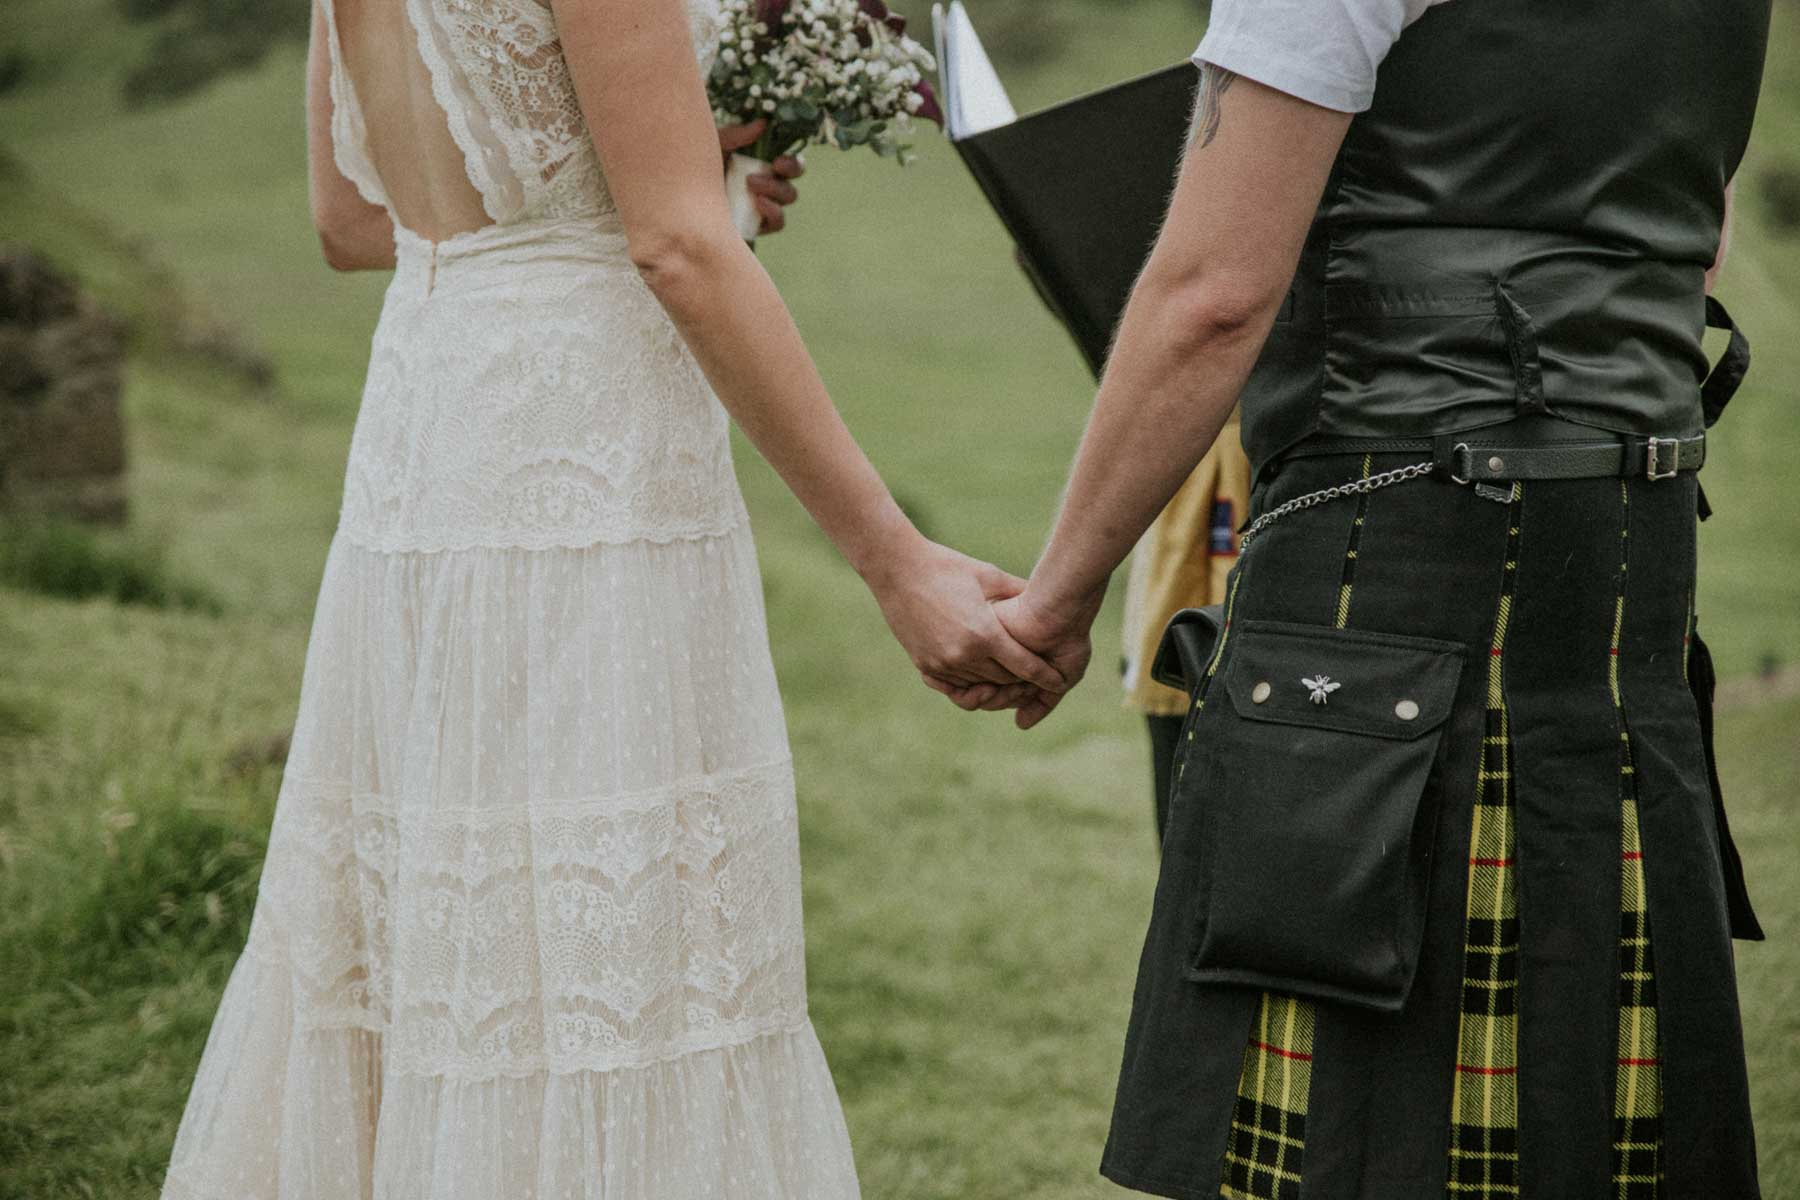 Edinburgh Elopement | Scotland Destination Wedding | Ceranna Photography